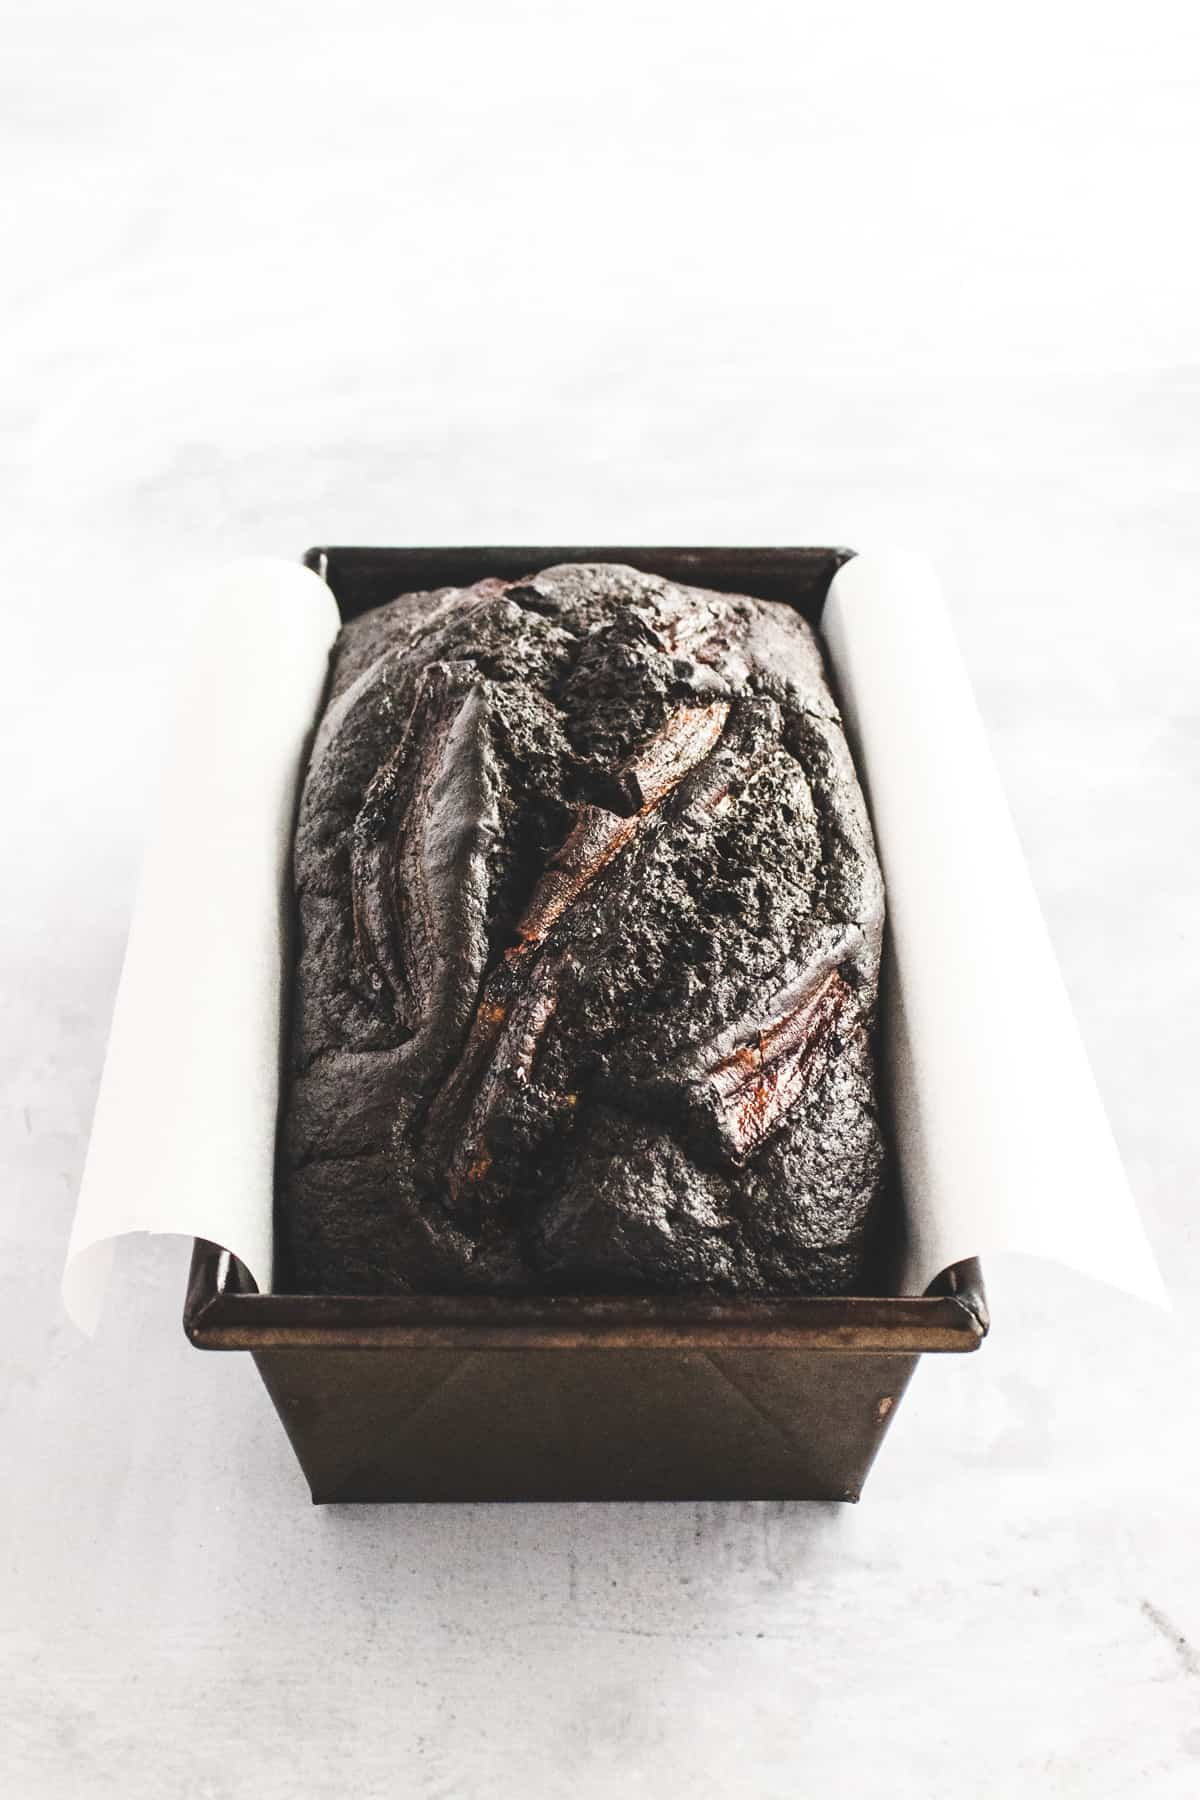 Dark chocolate banana bread in a loaf tin lined with baking parchment